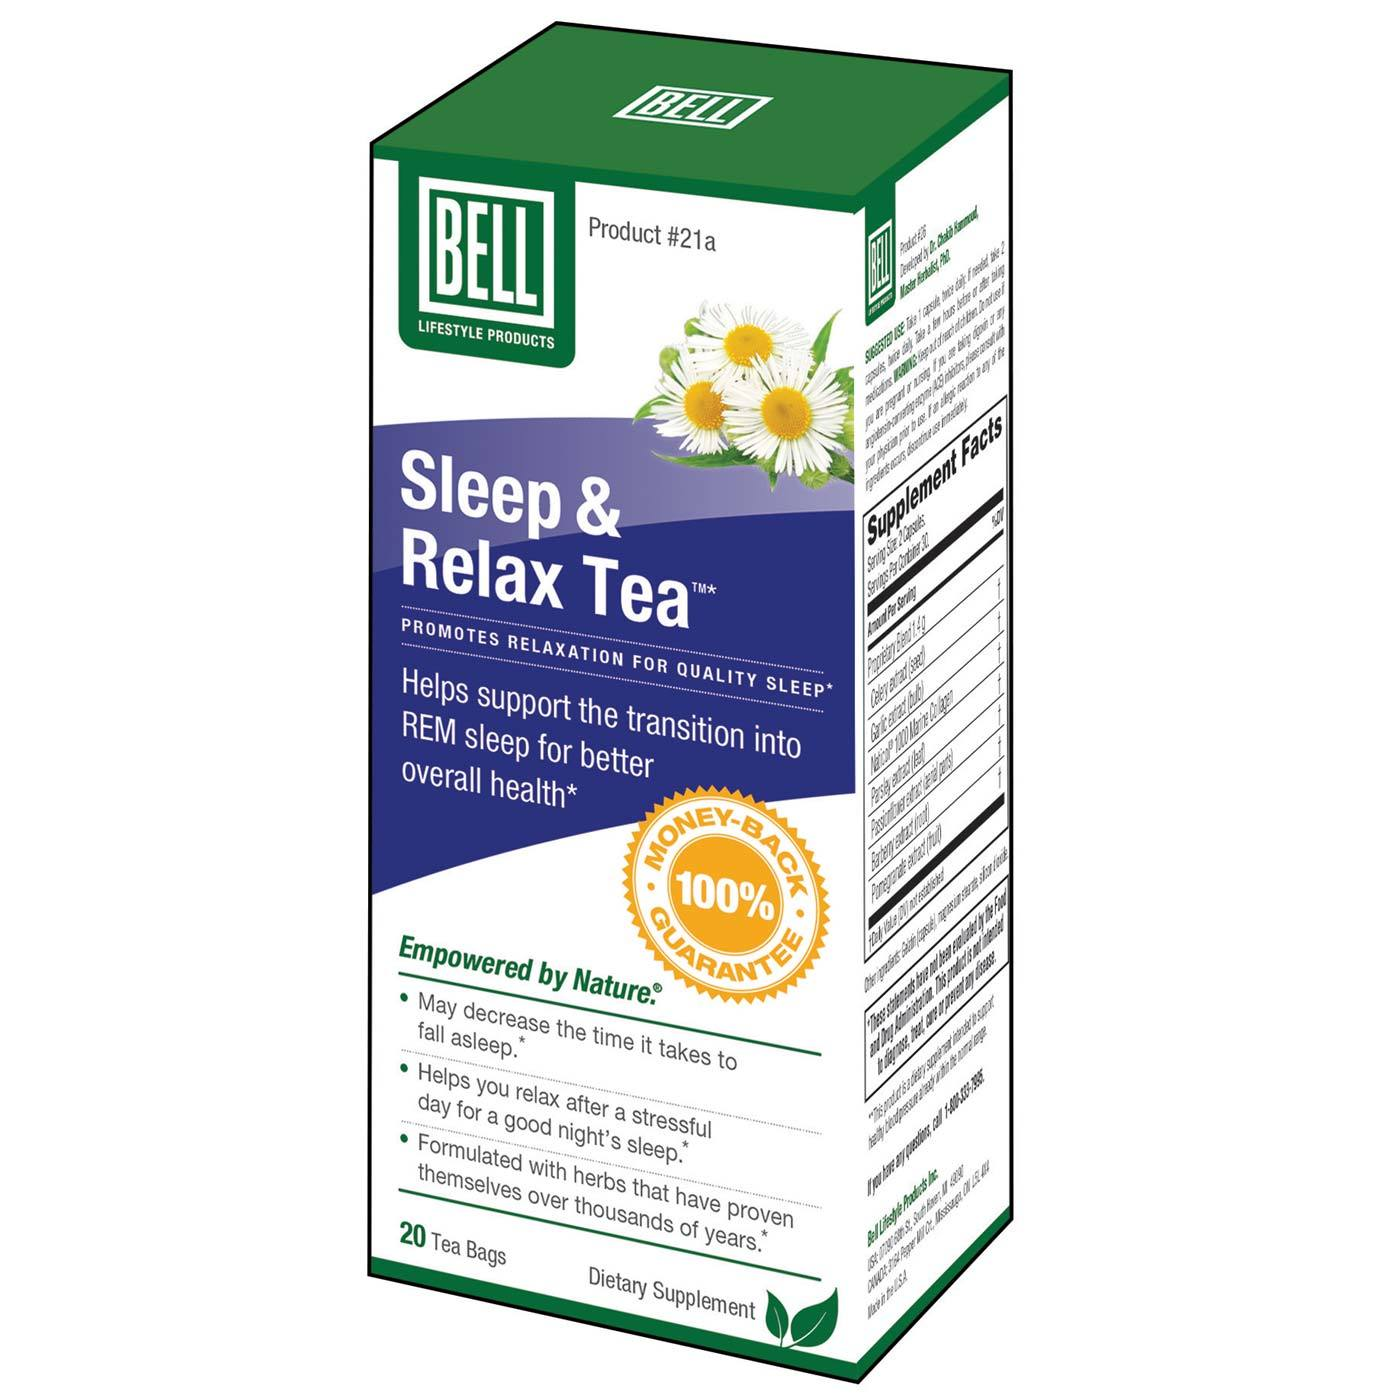 sleep and bell 36-35 bell boulevard,  at united diagnostics,  providers through the passion of our people and innovative care to the patients we help for their sleep,.